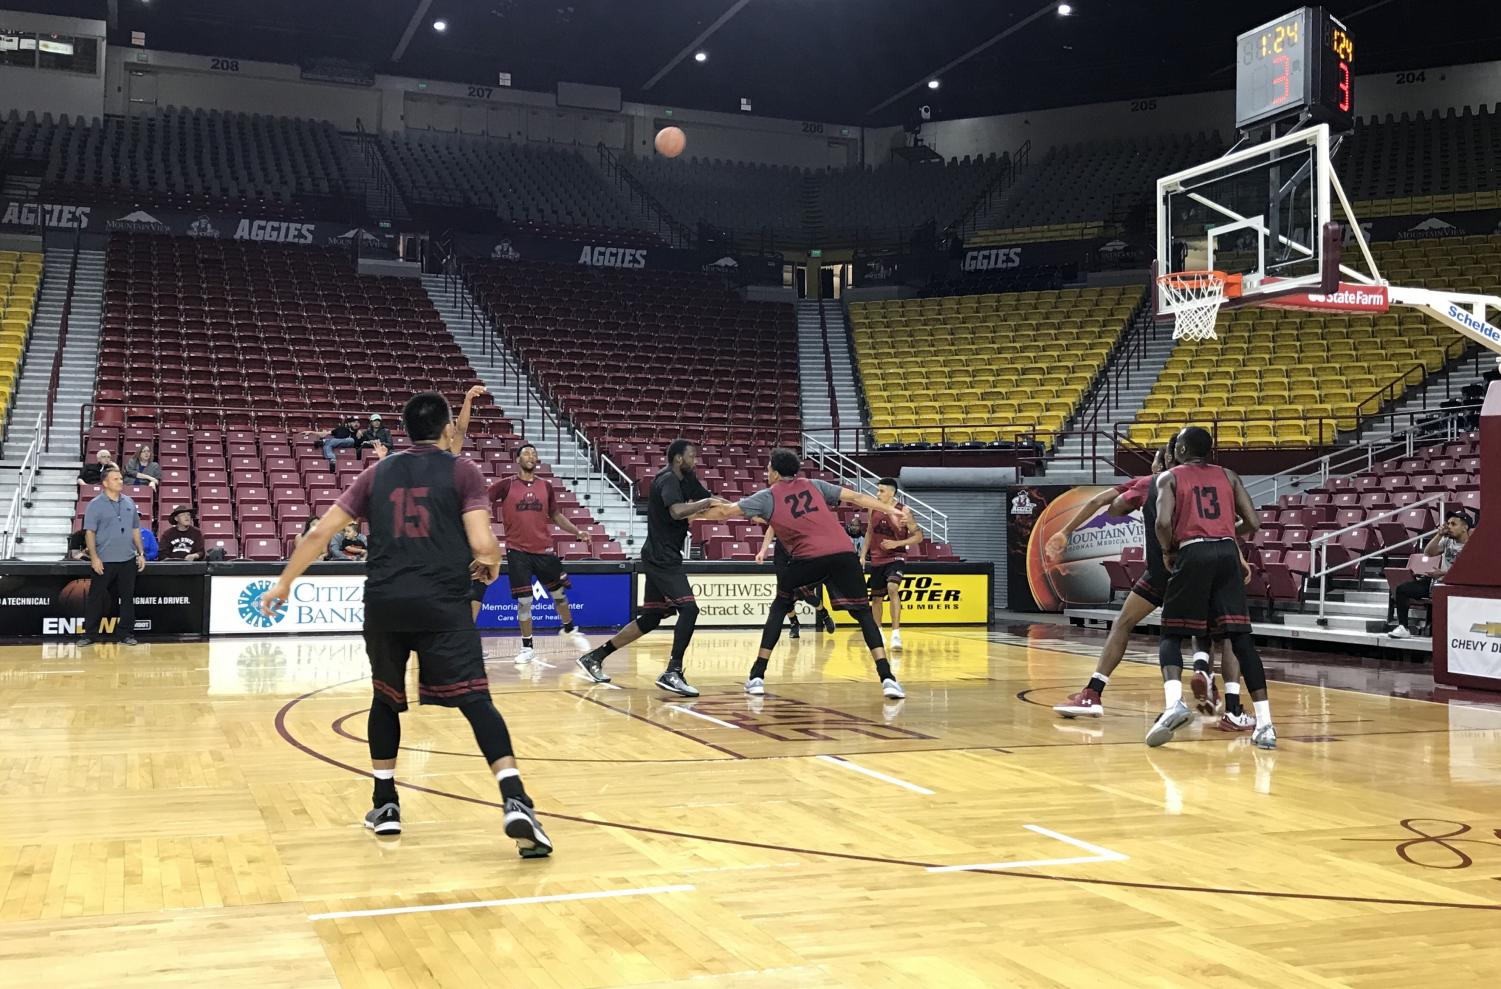 Team black puts up a shot during Saturday's intrasquad scrimmage at the Pan Am.